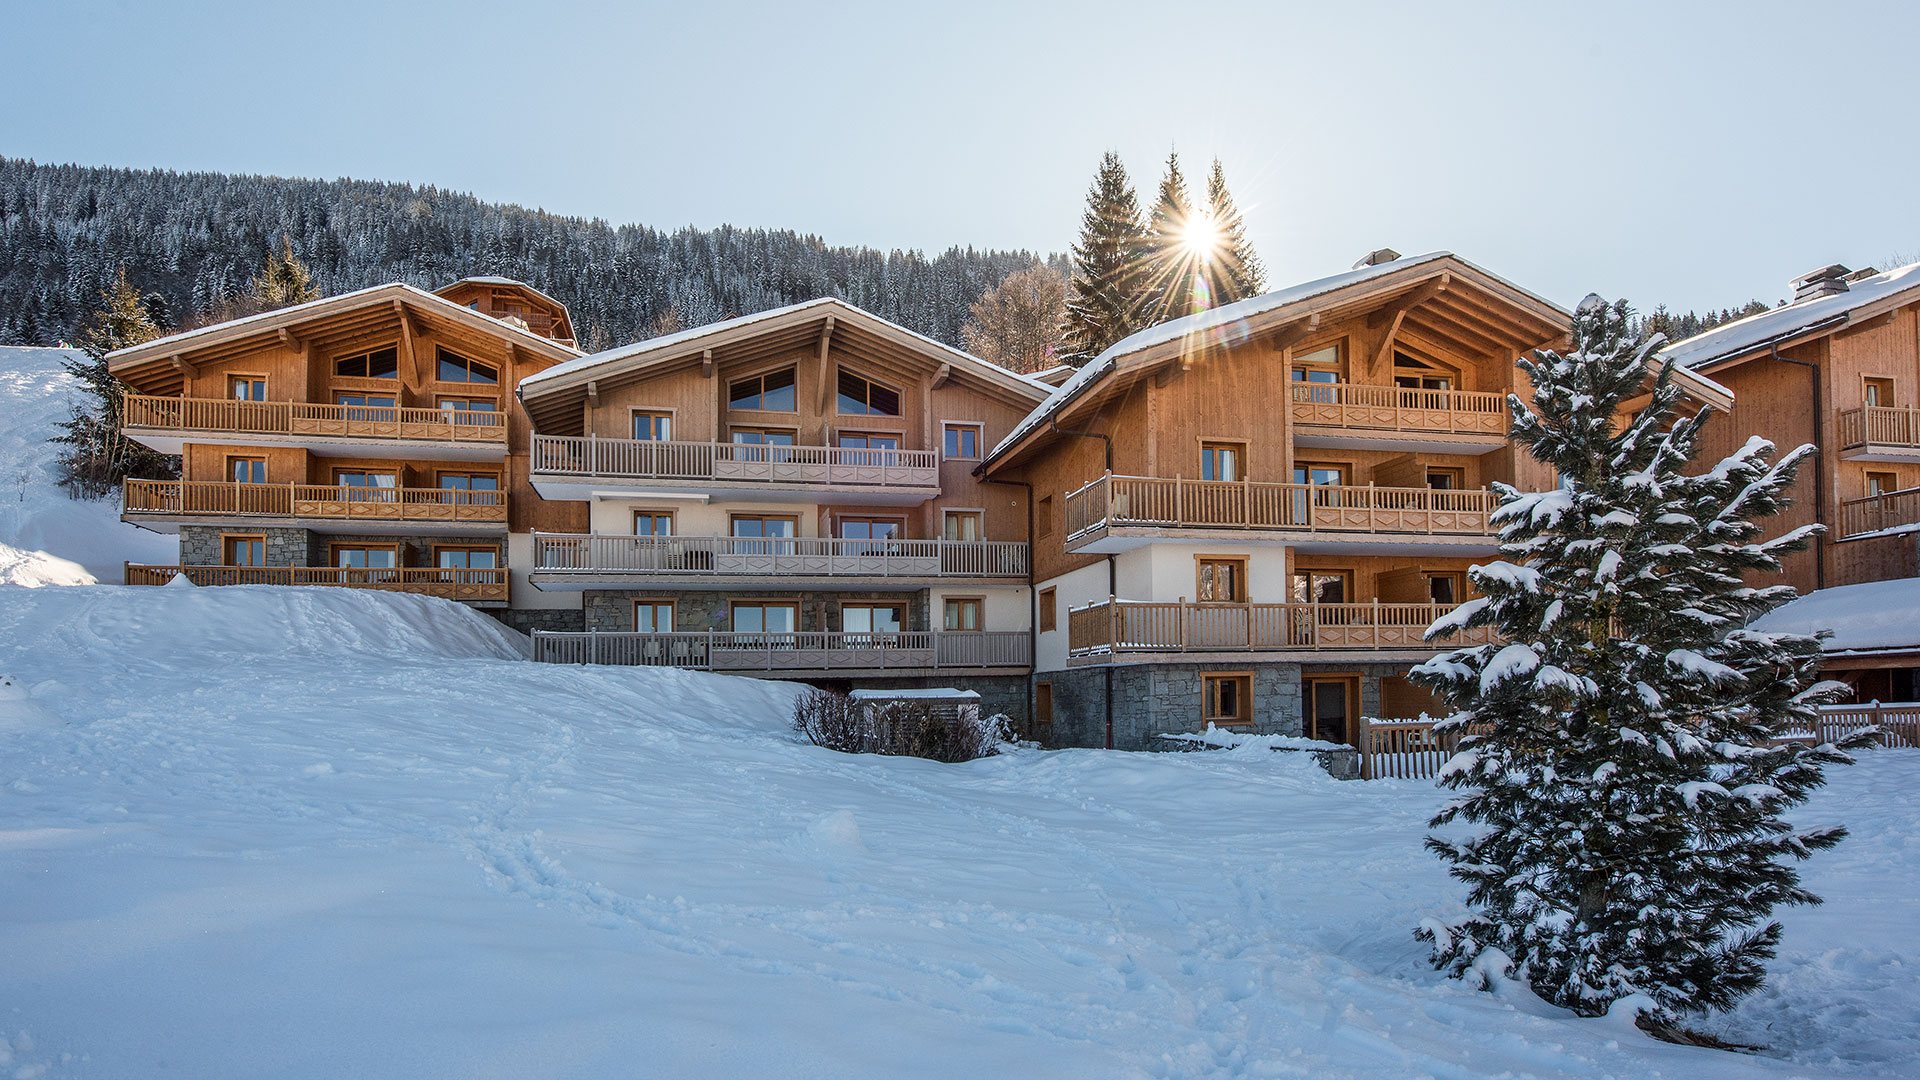 Les Chalets De Jouvence Ski Apartment In Les Carroz Cgh Residences